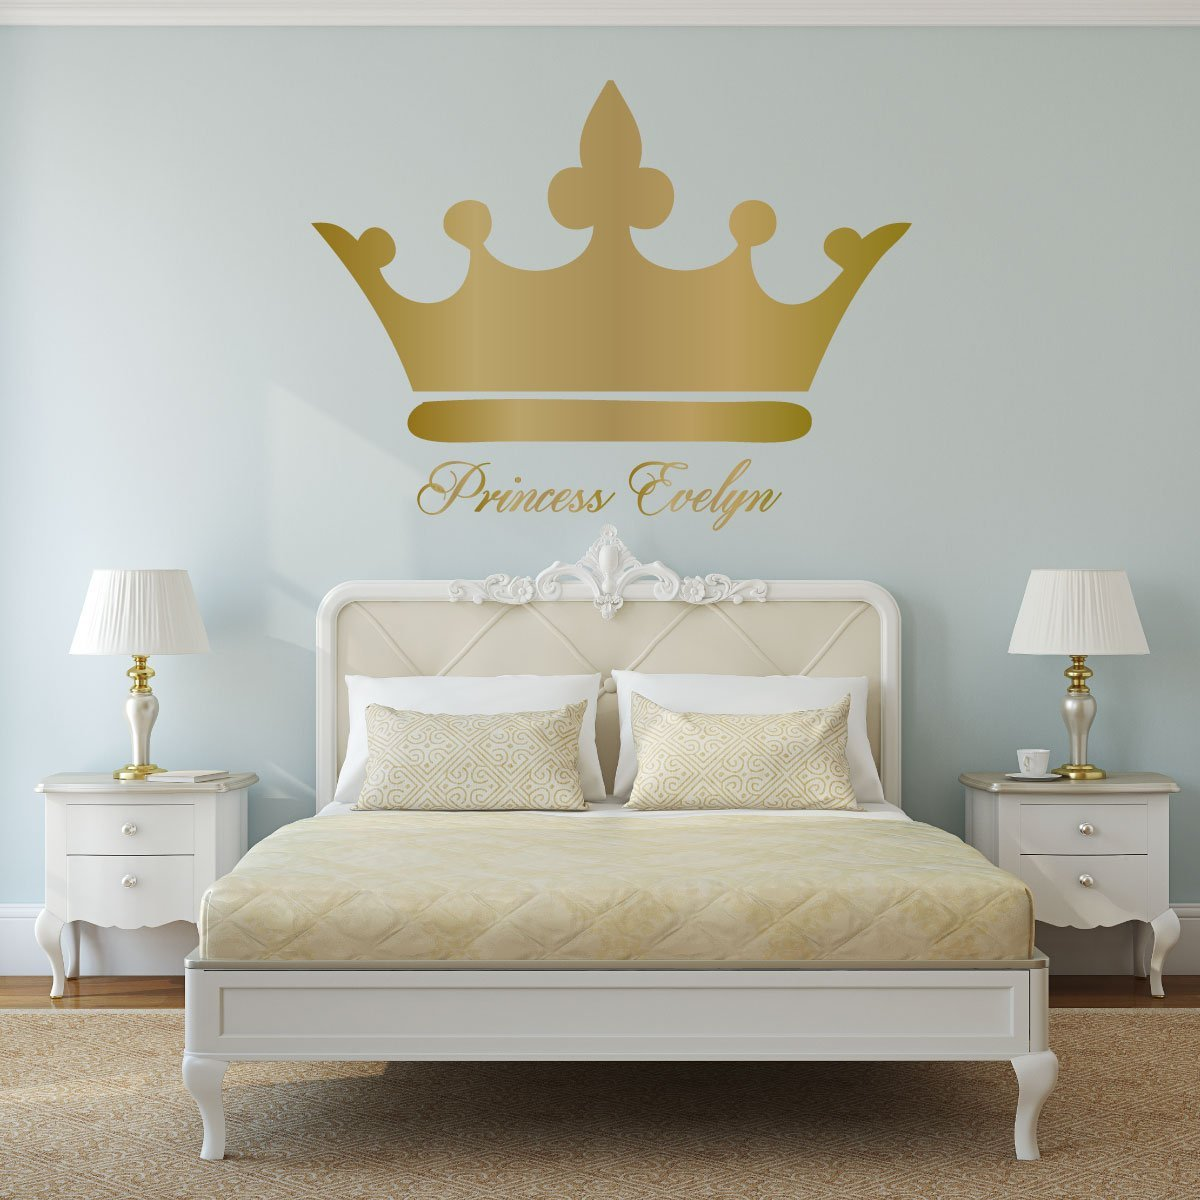 Personalized Name Princess Crown Bedroom Vinyl Decor Wall Decal